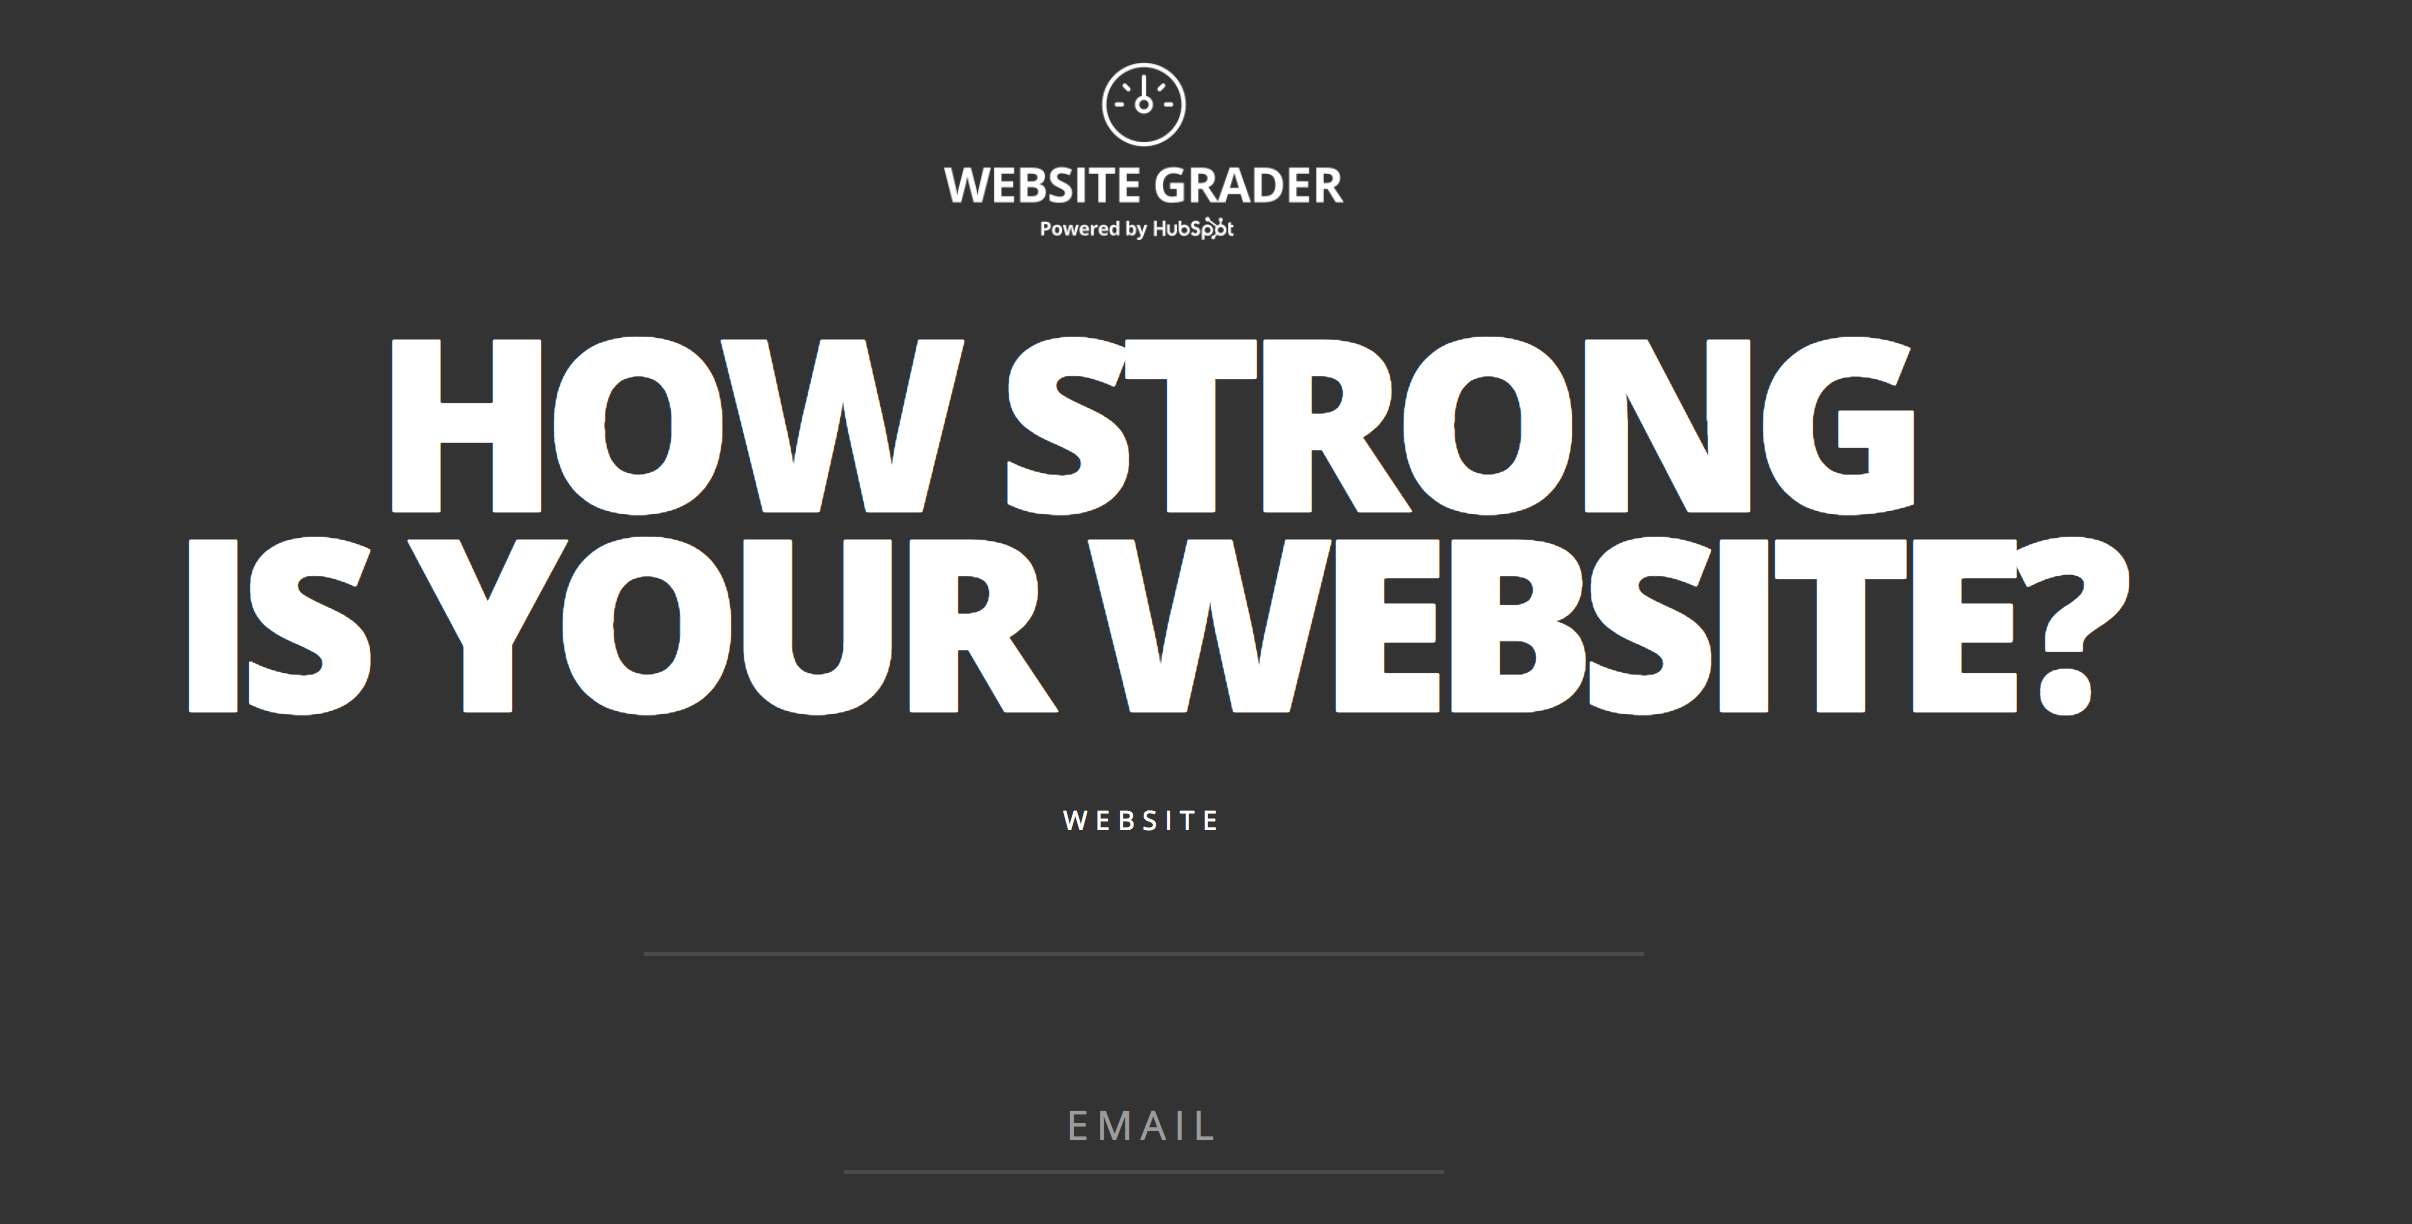 Hubspot website grader for conversion rate optimization